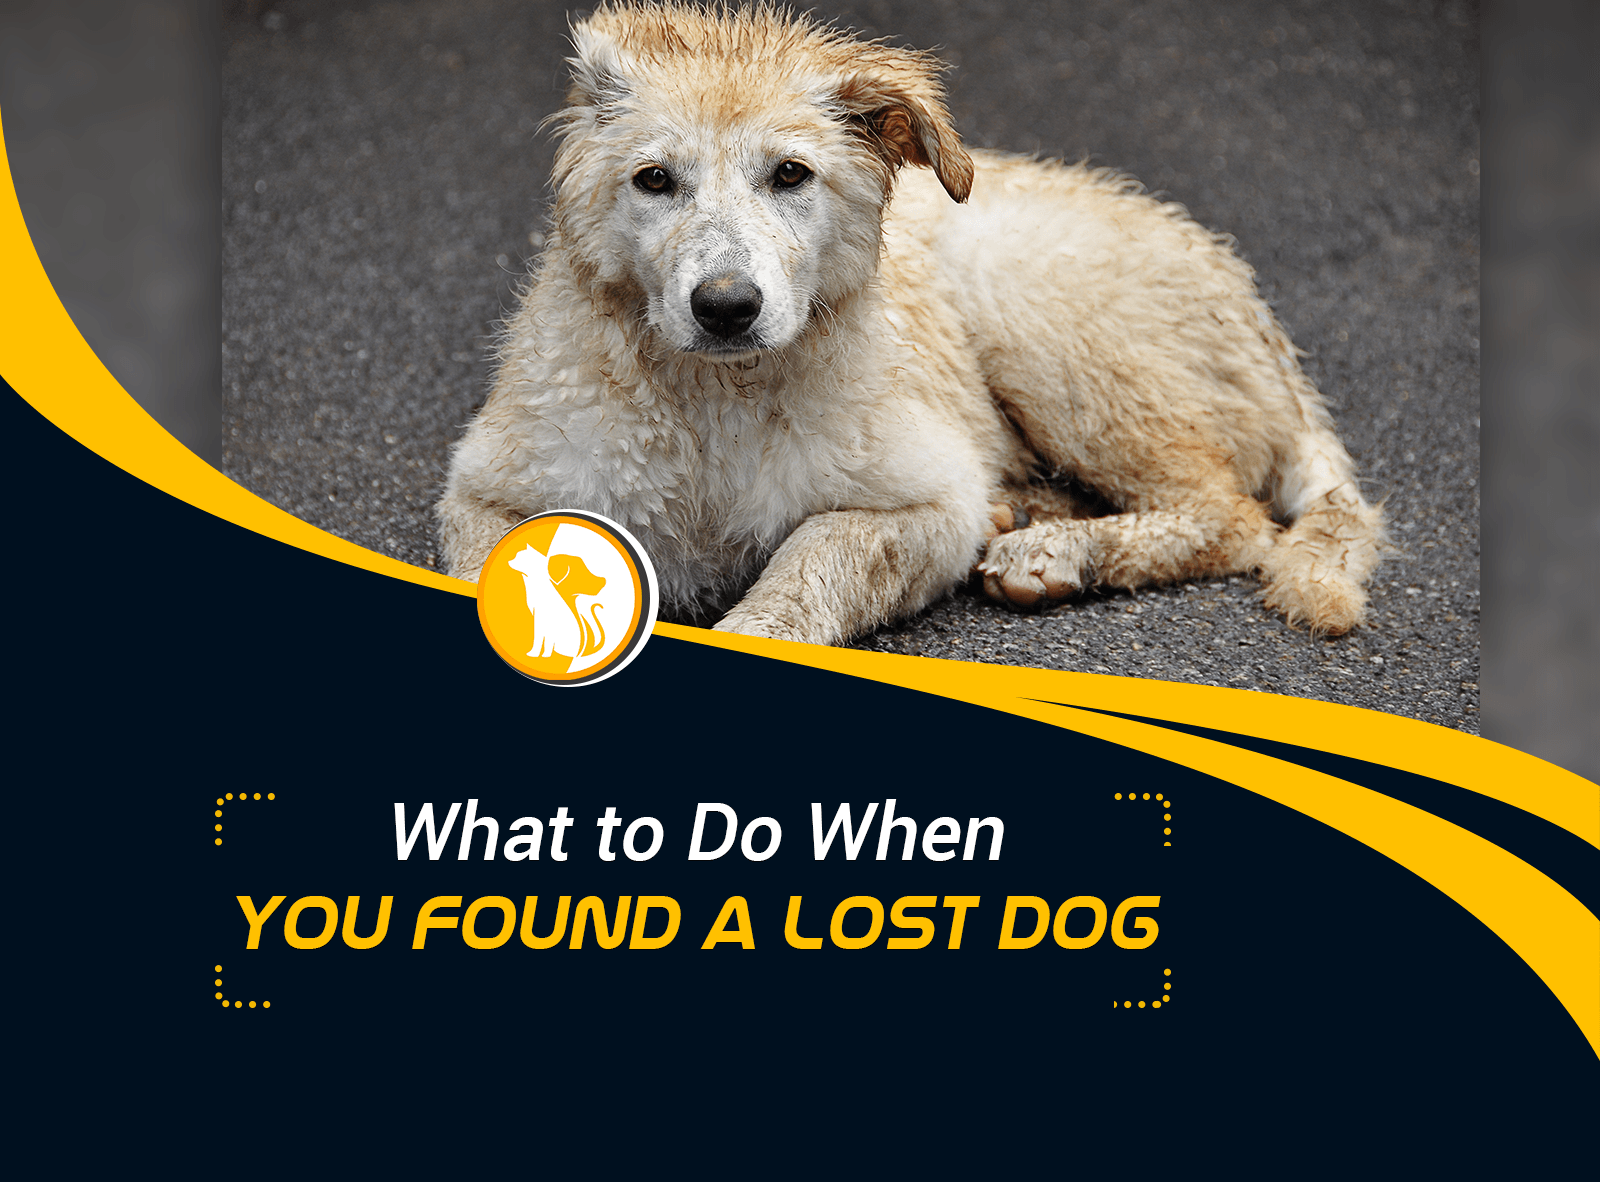 What to Do When You Found a Lost Dog